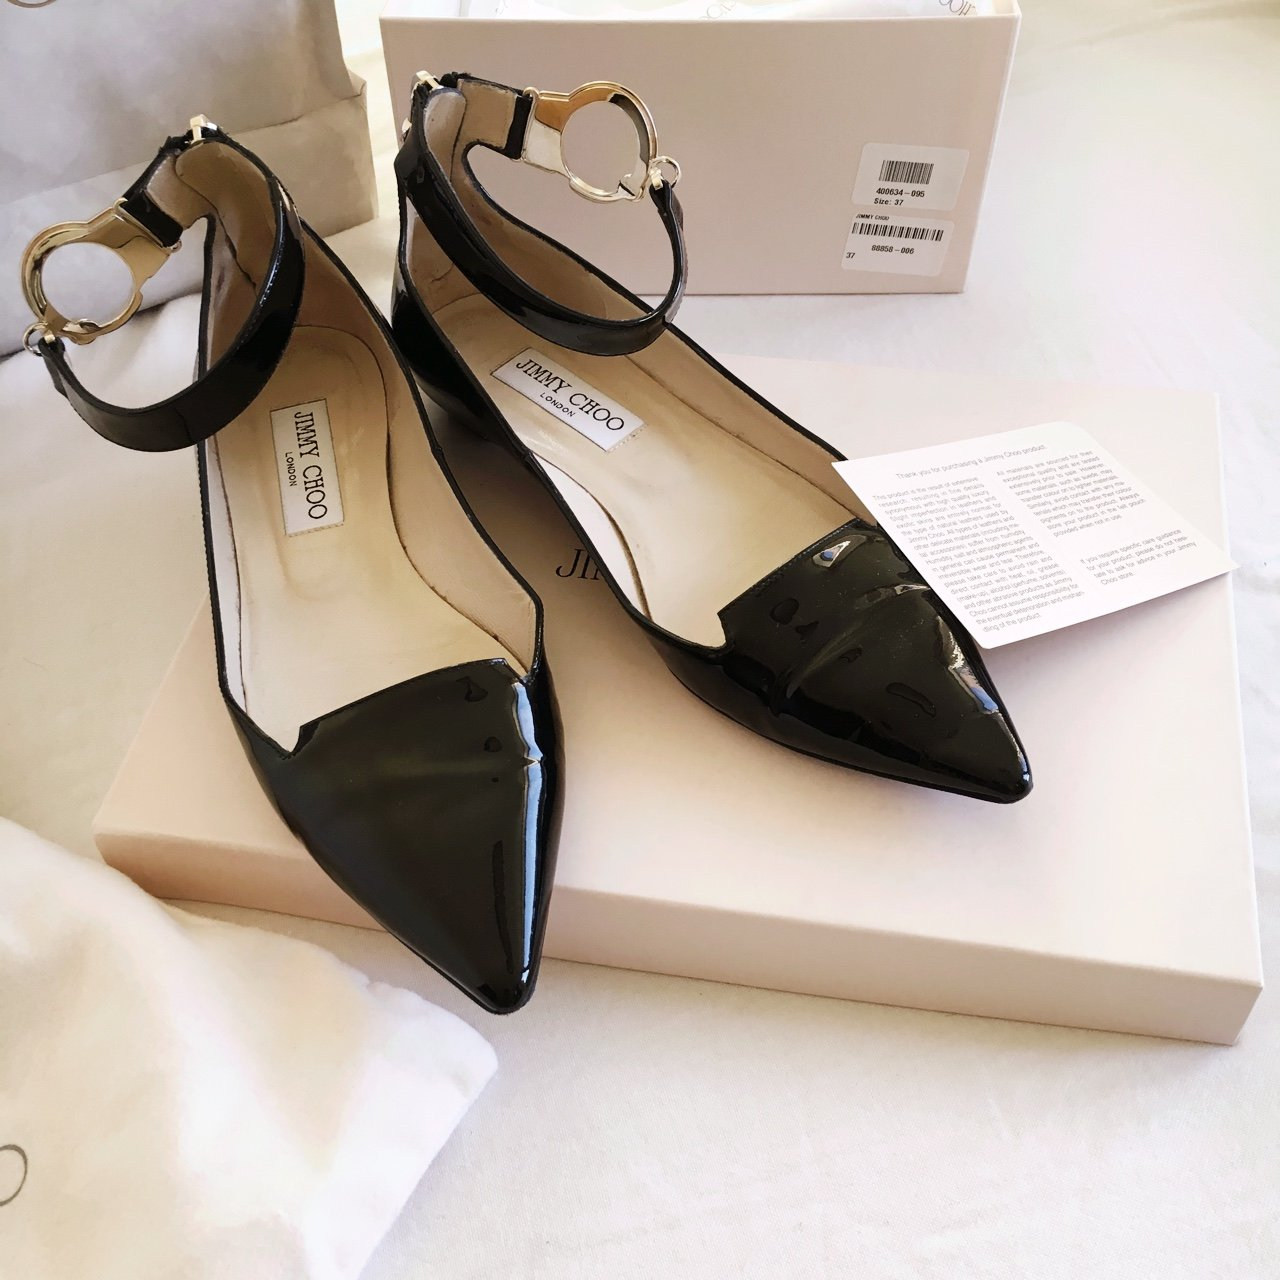 6de5a1f2857 Black Patent  jimmychoo flat shoes. Size  37 zip at the back - Depop